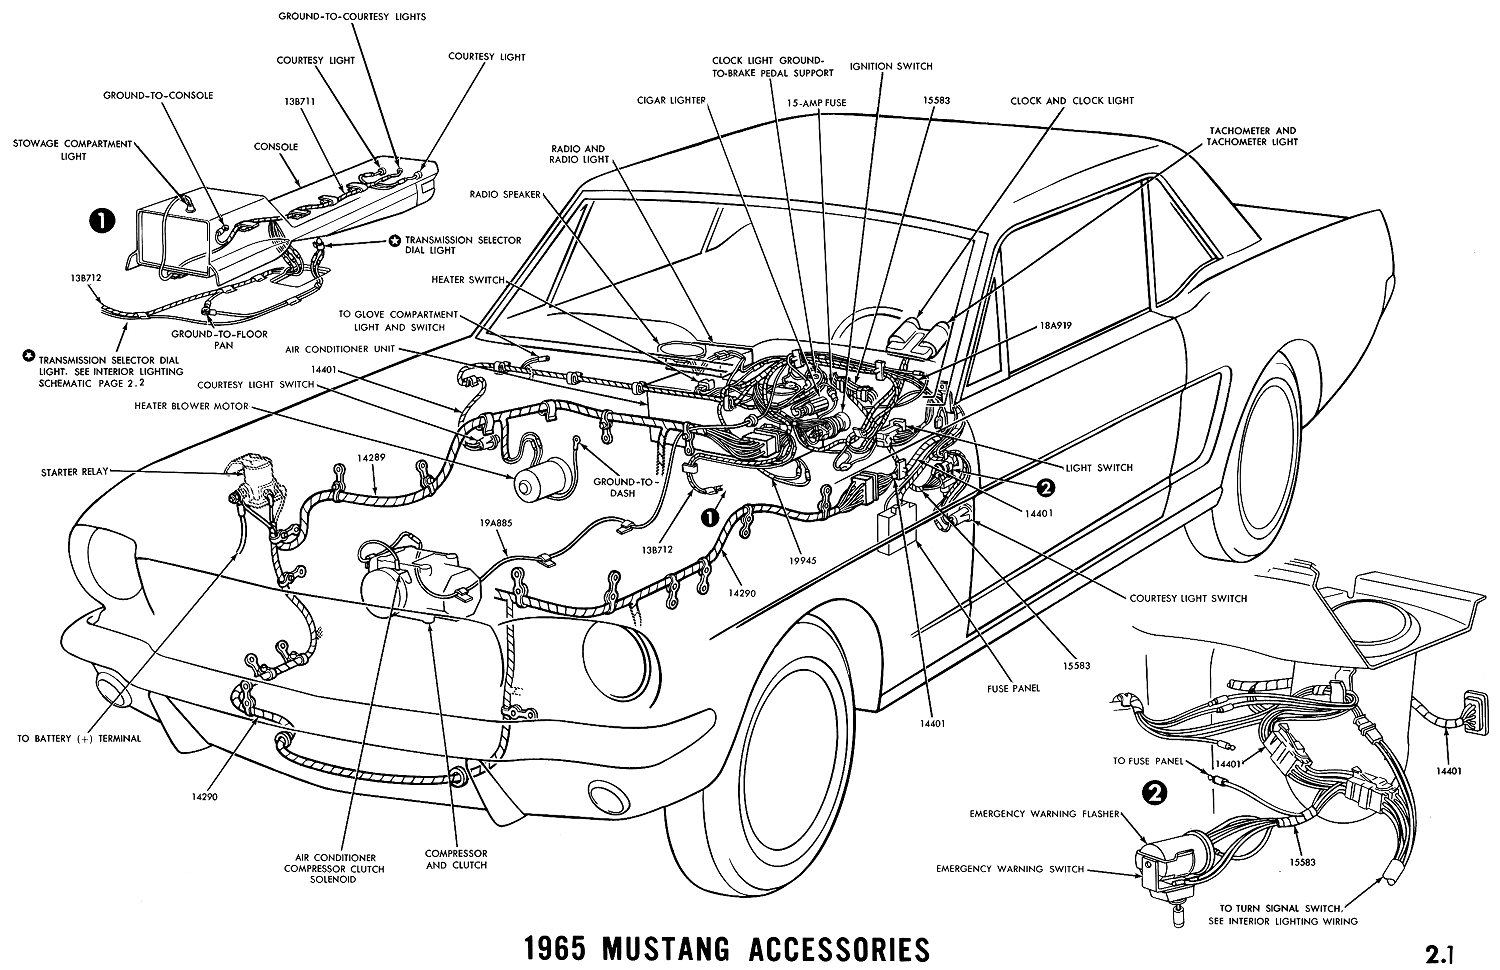 1965 Mustang Wiring Diagrams Average Joe Restoration Ignition System Diagram As Well Car Harness Together 1965h